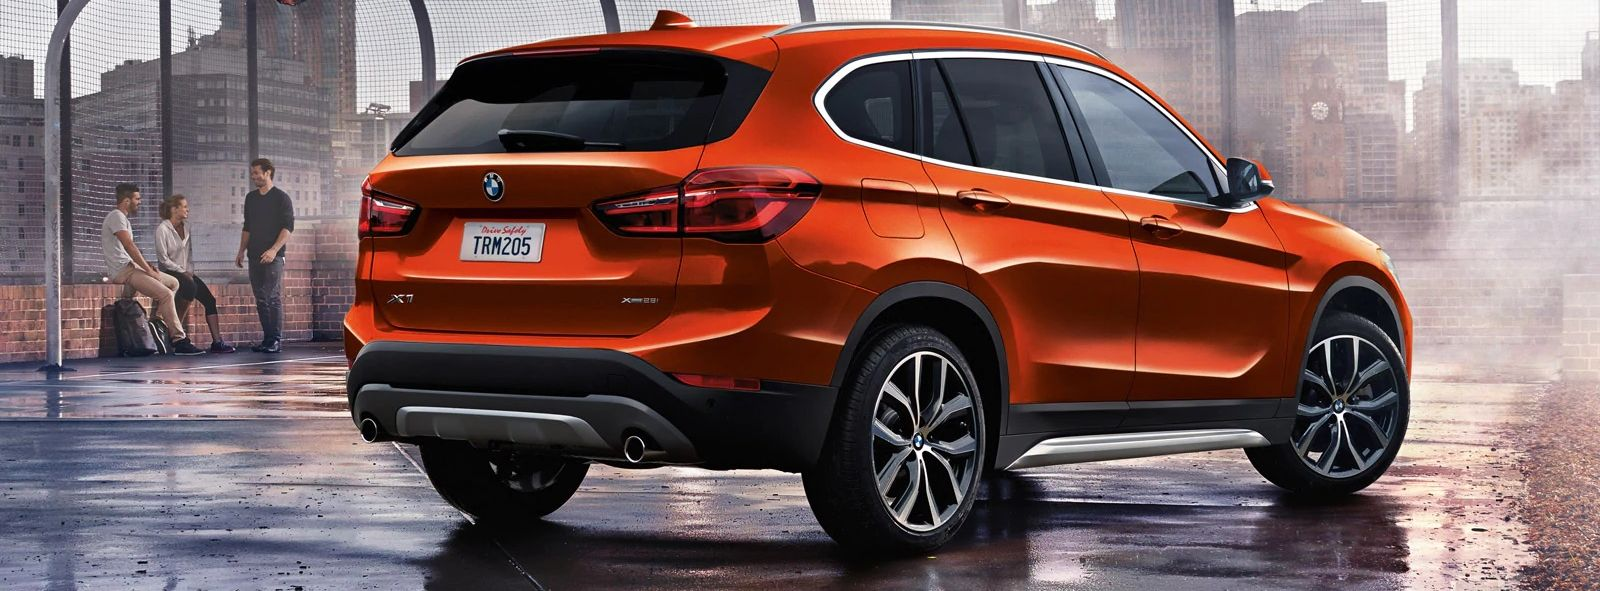 2019 BMW X1 for Sale near Dallas, TX